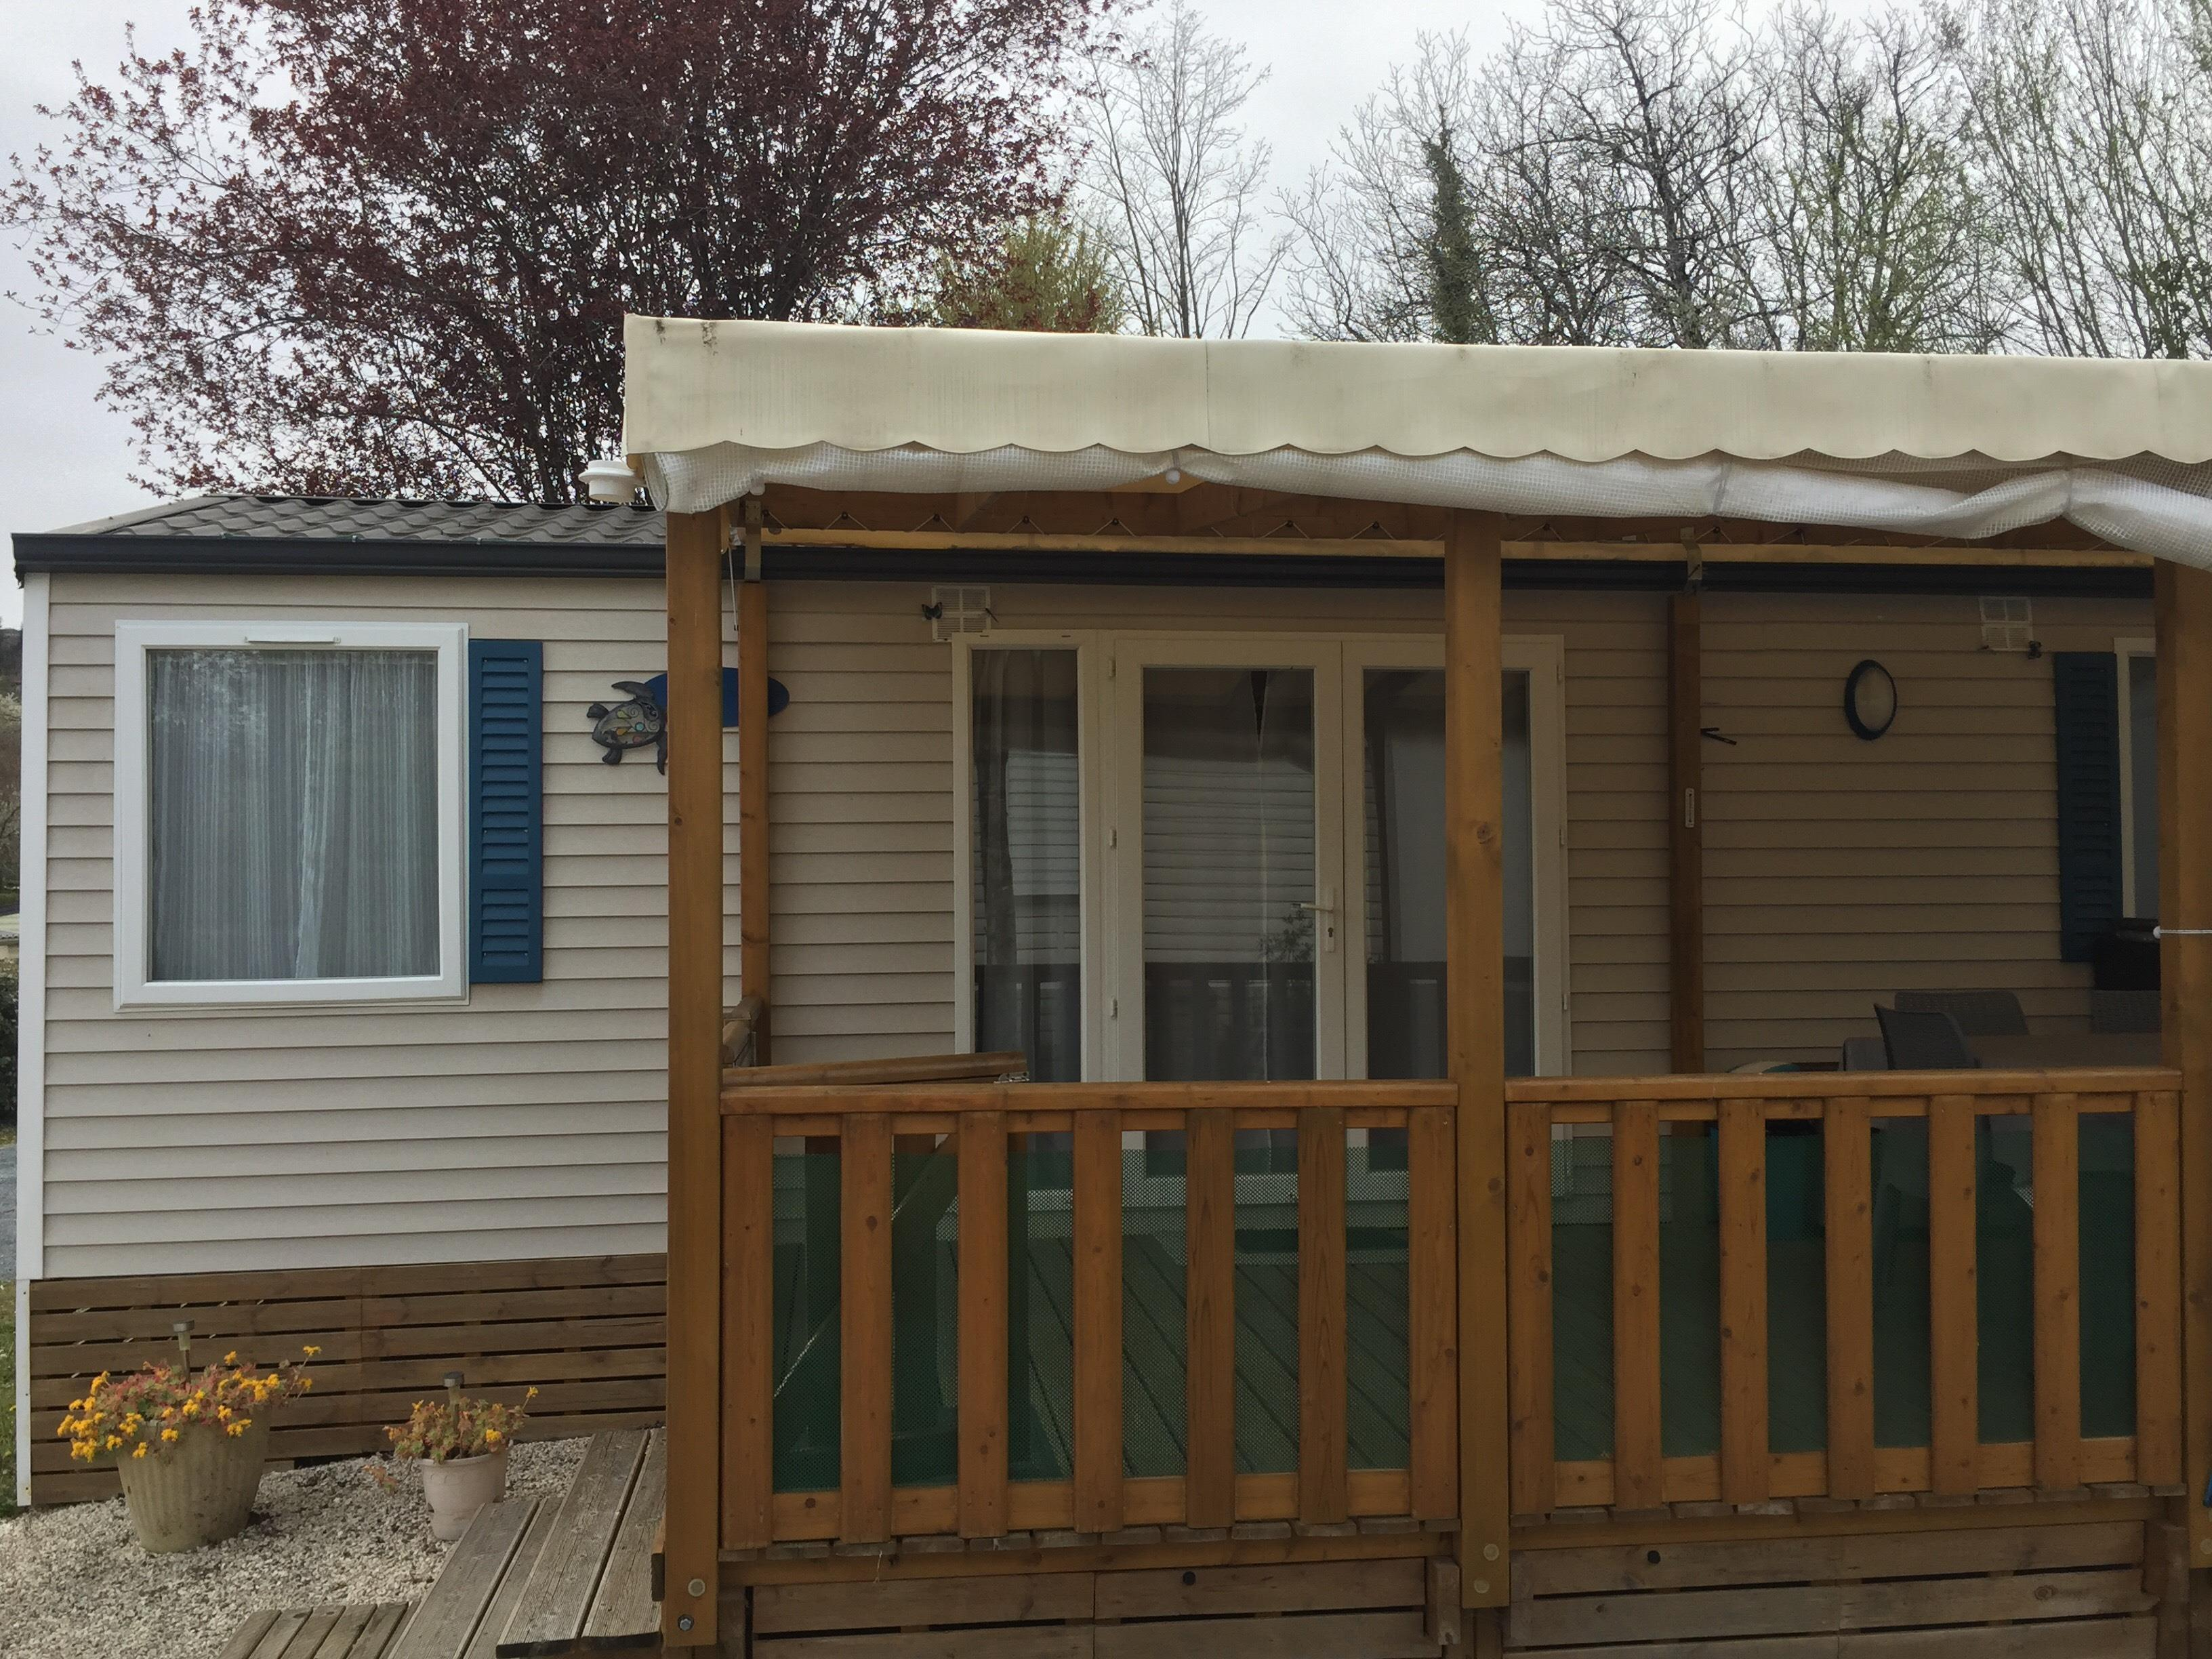 Location - Mobilhome 2 Chambres N°17 - Terrasse En Bois Couverte - Camping Le Repaire